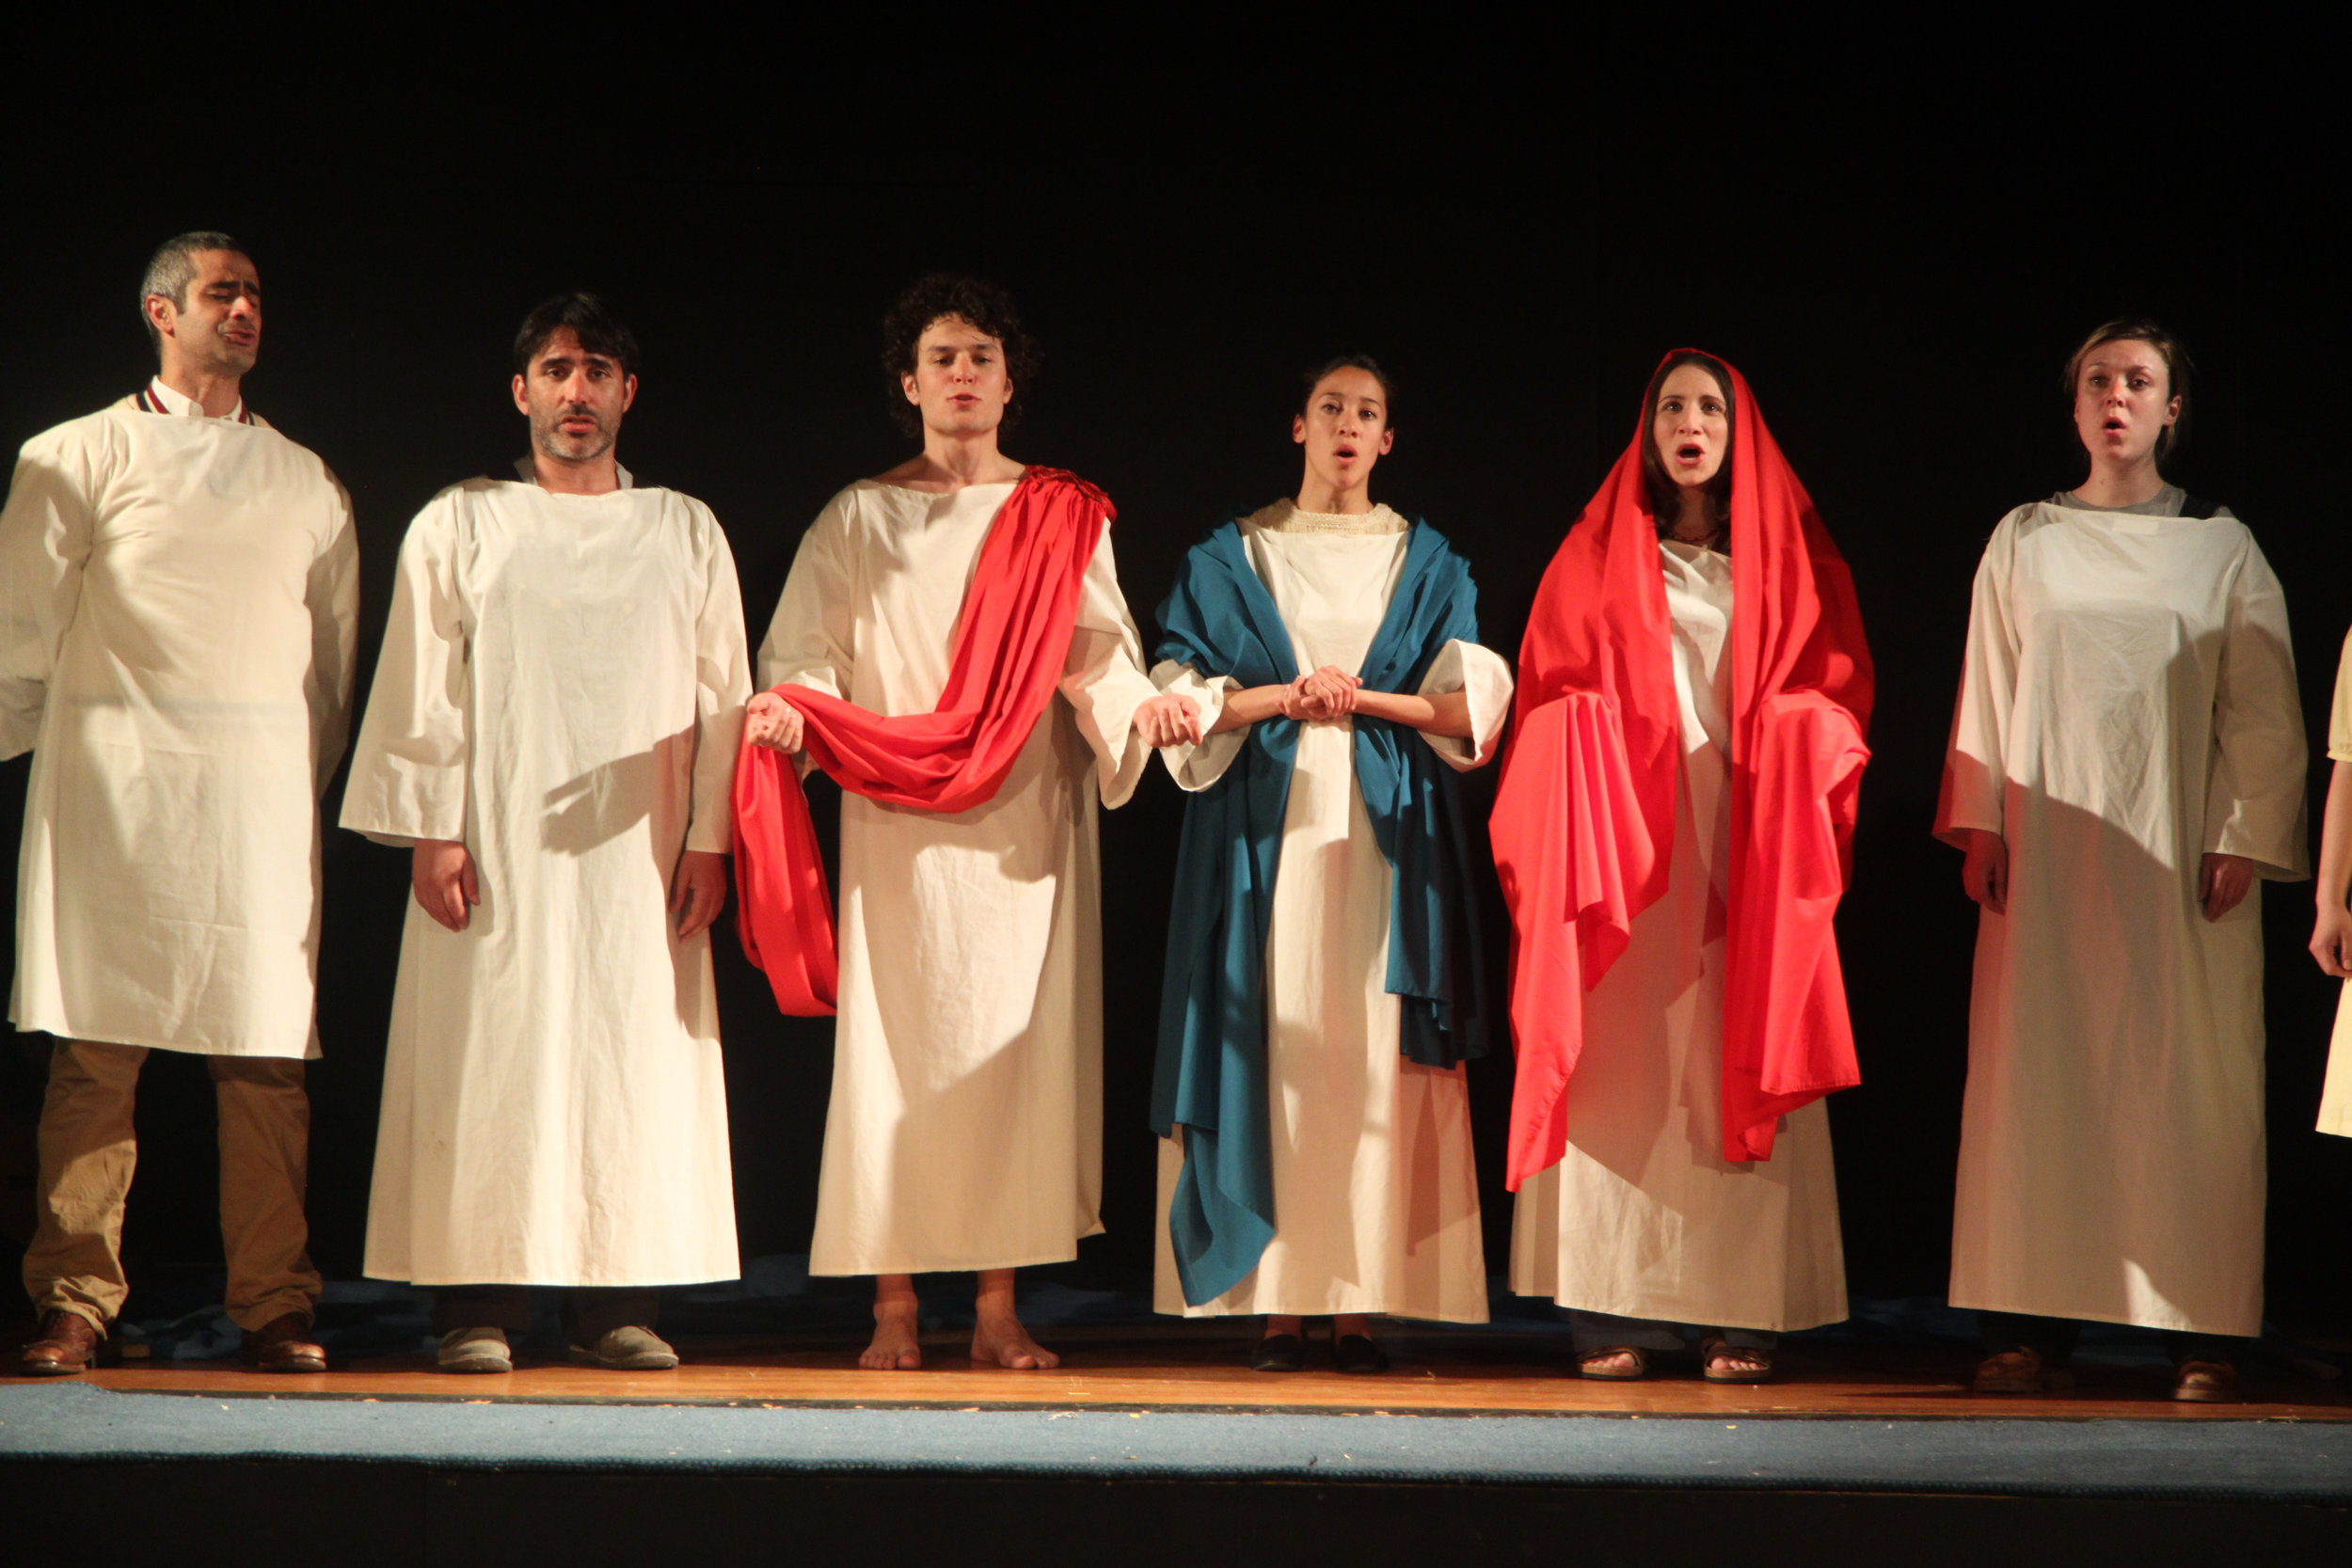 Sam Kalilieh, Thrasso Petras, Andrew Kushnir, Mayko Nguyen, Julie Tepperman, and Katherine Cullen in Passion Play (Part Two)